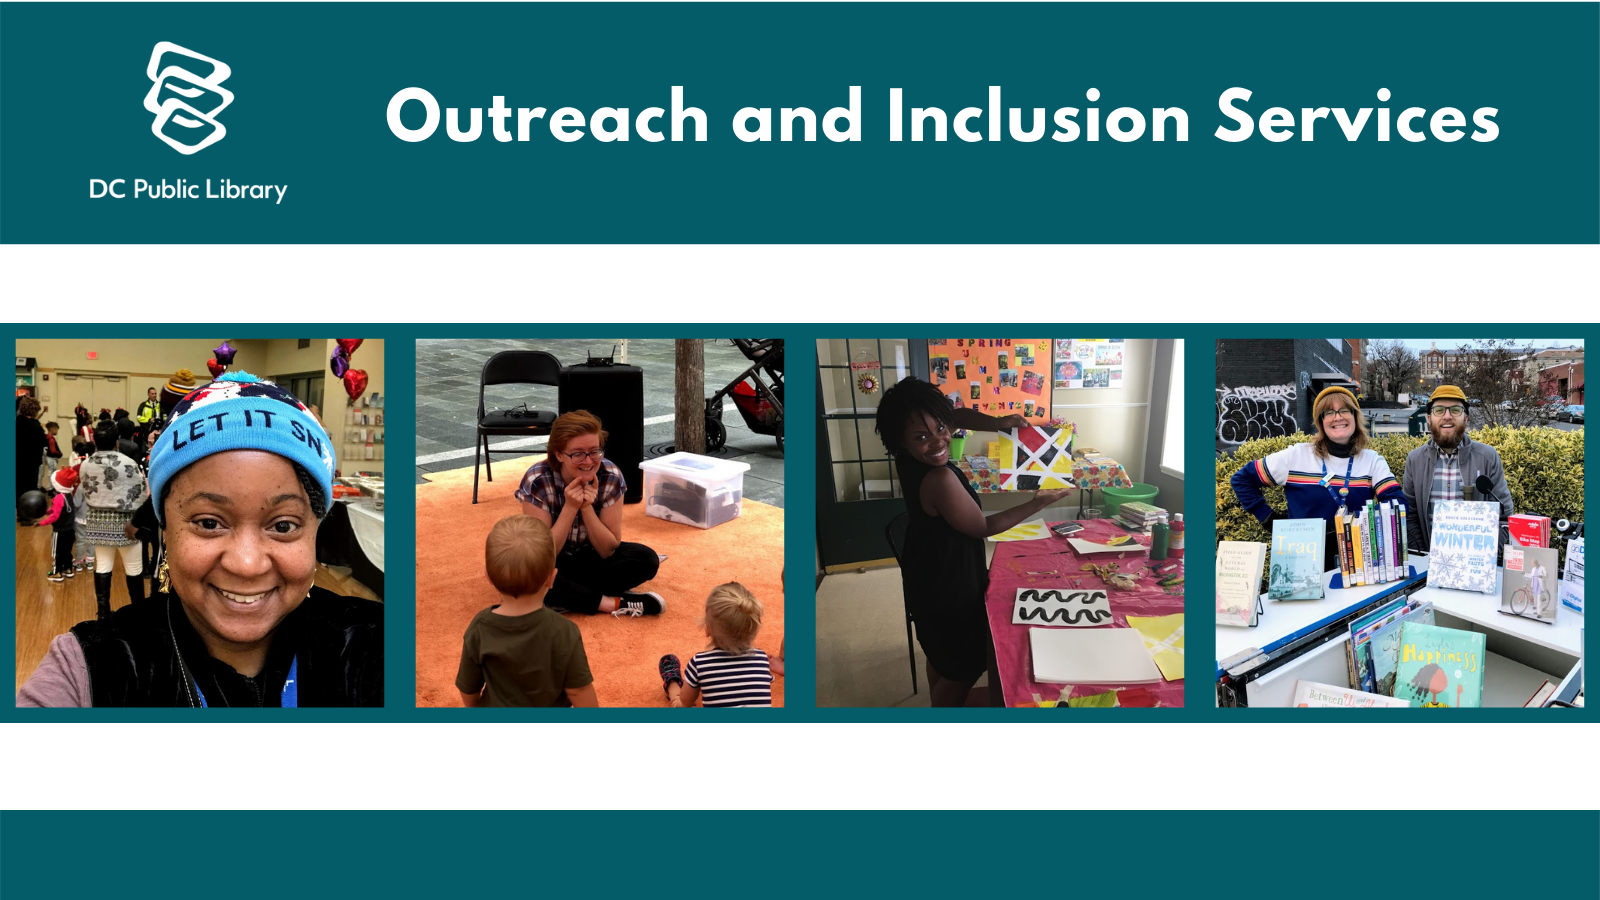 Outreach and inclusion services team members